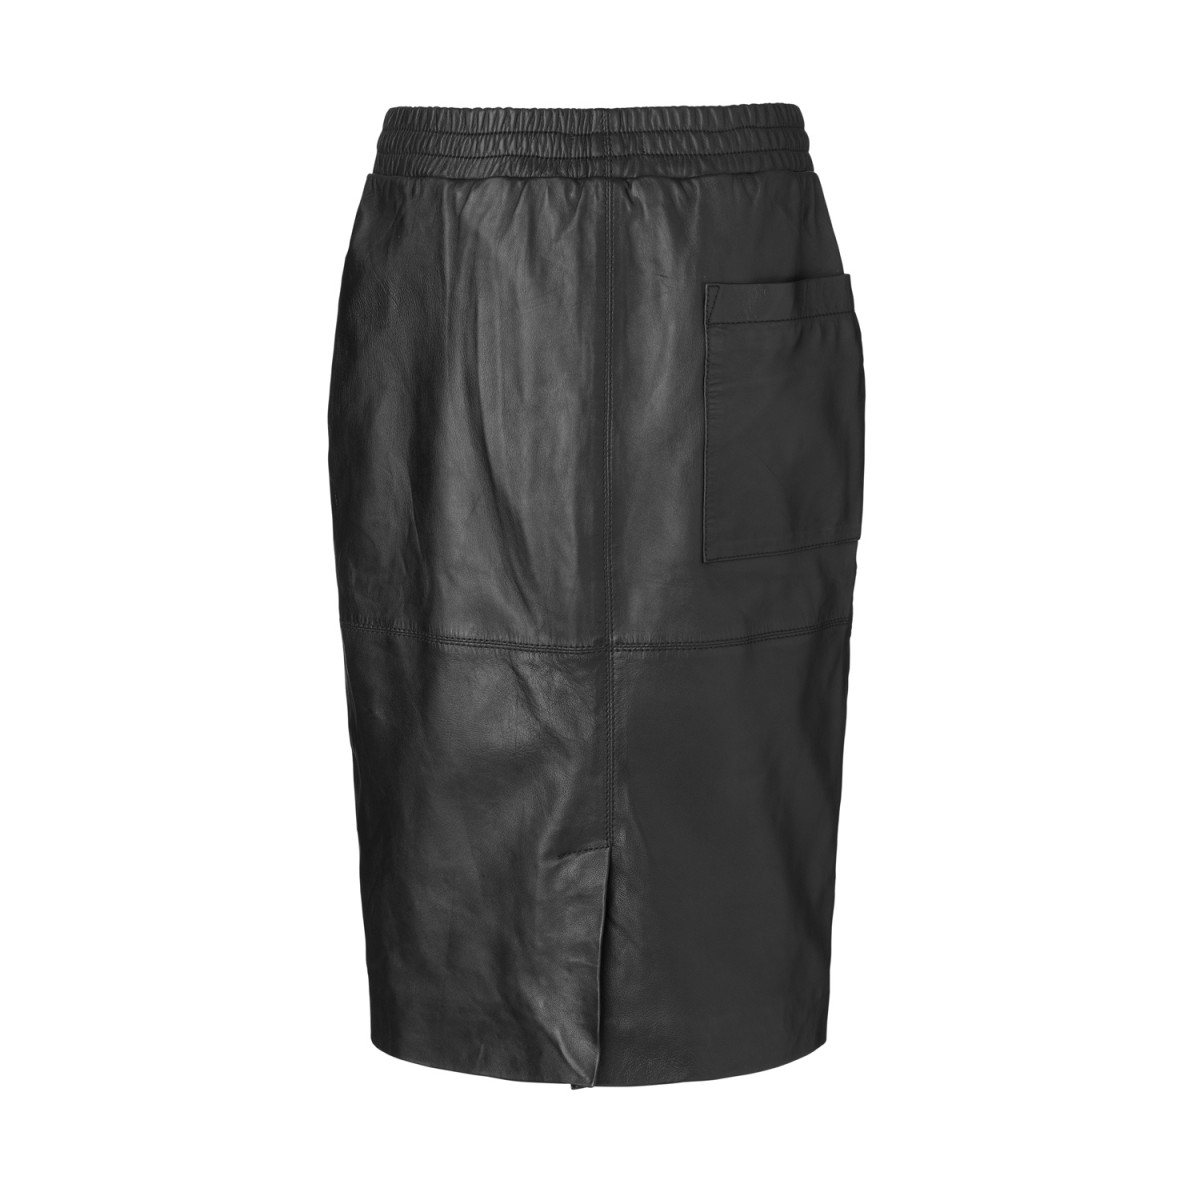 Rosemunde 1215-010 Skirt Black-32